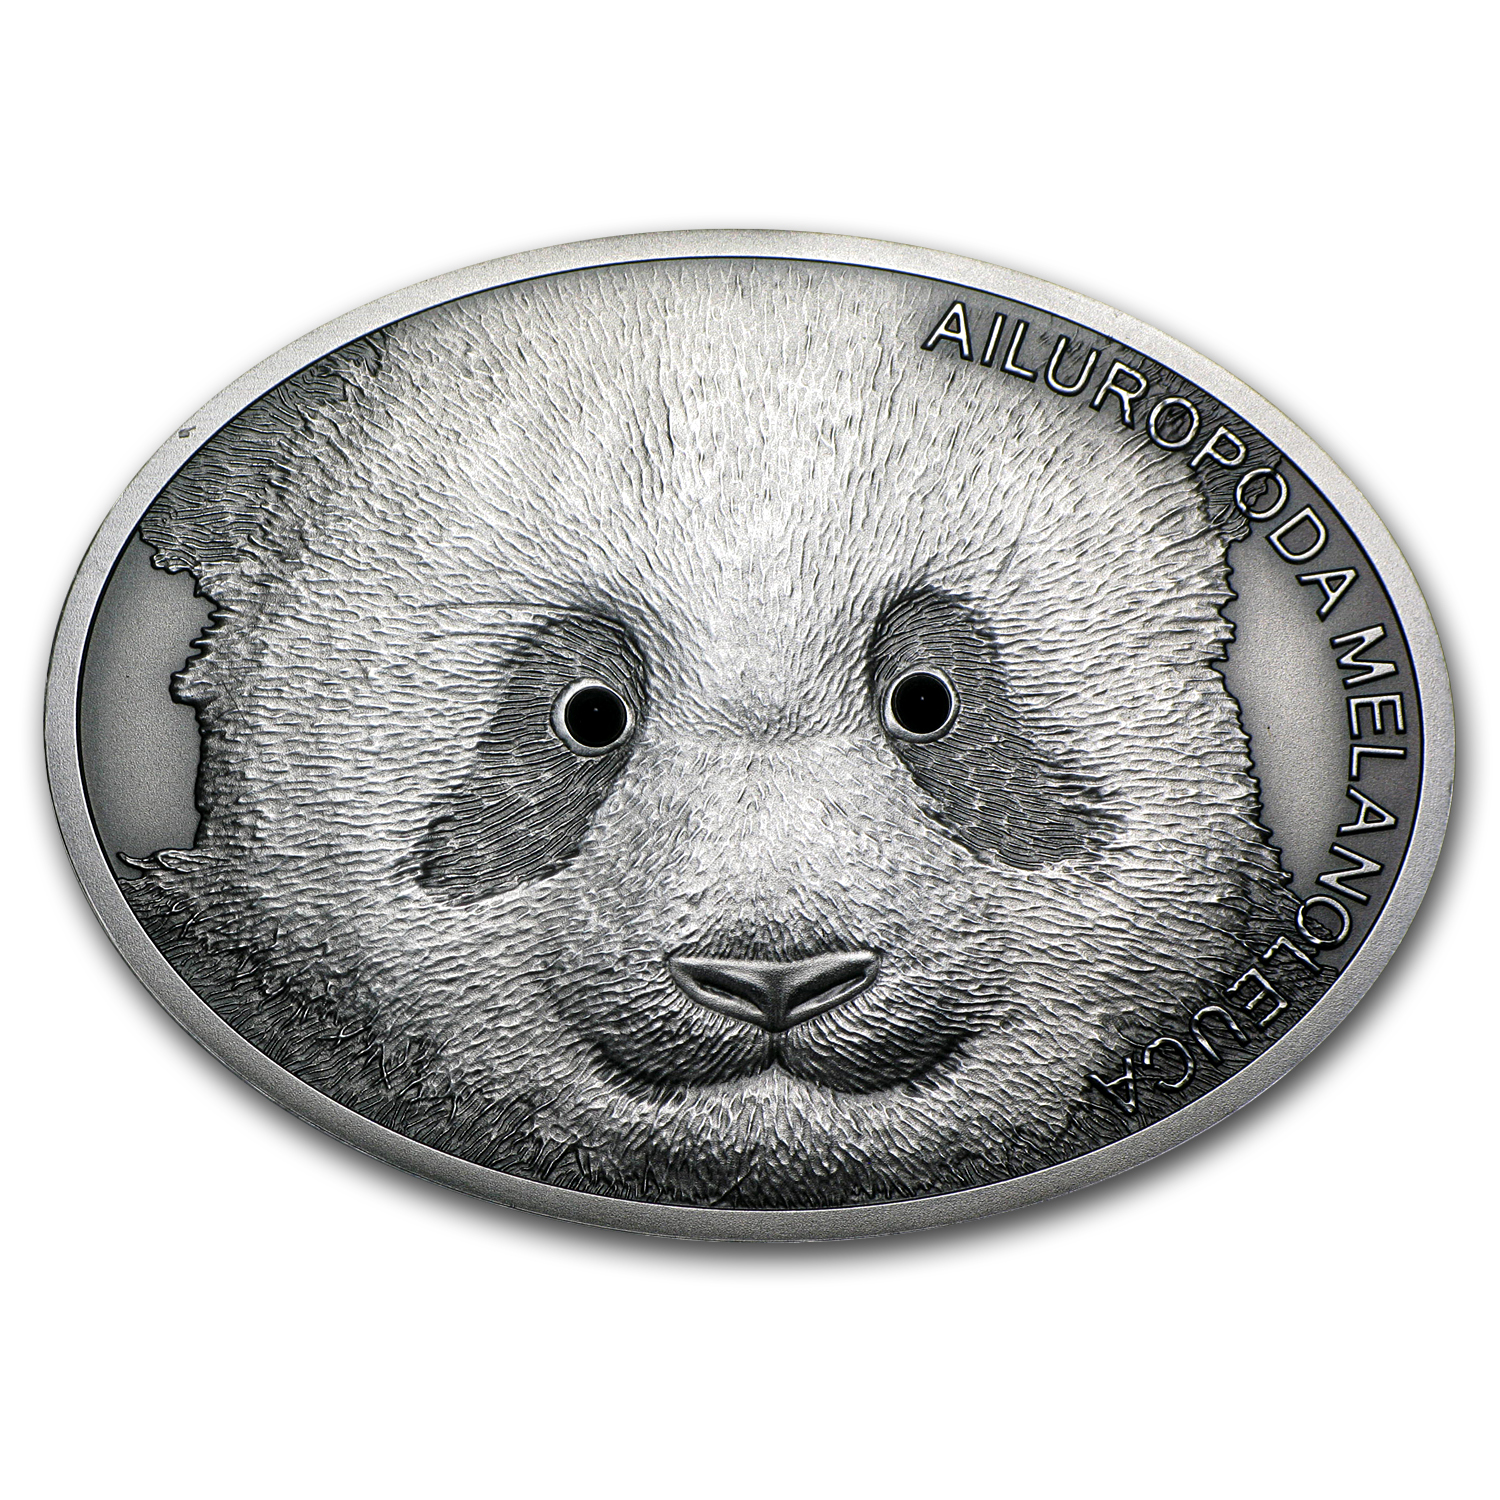 Fiji 2013 1 oz Silver $10 Fascinating Wildlife - Giant Panda